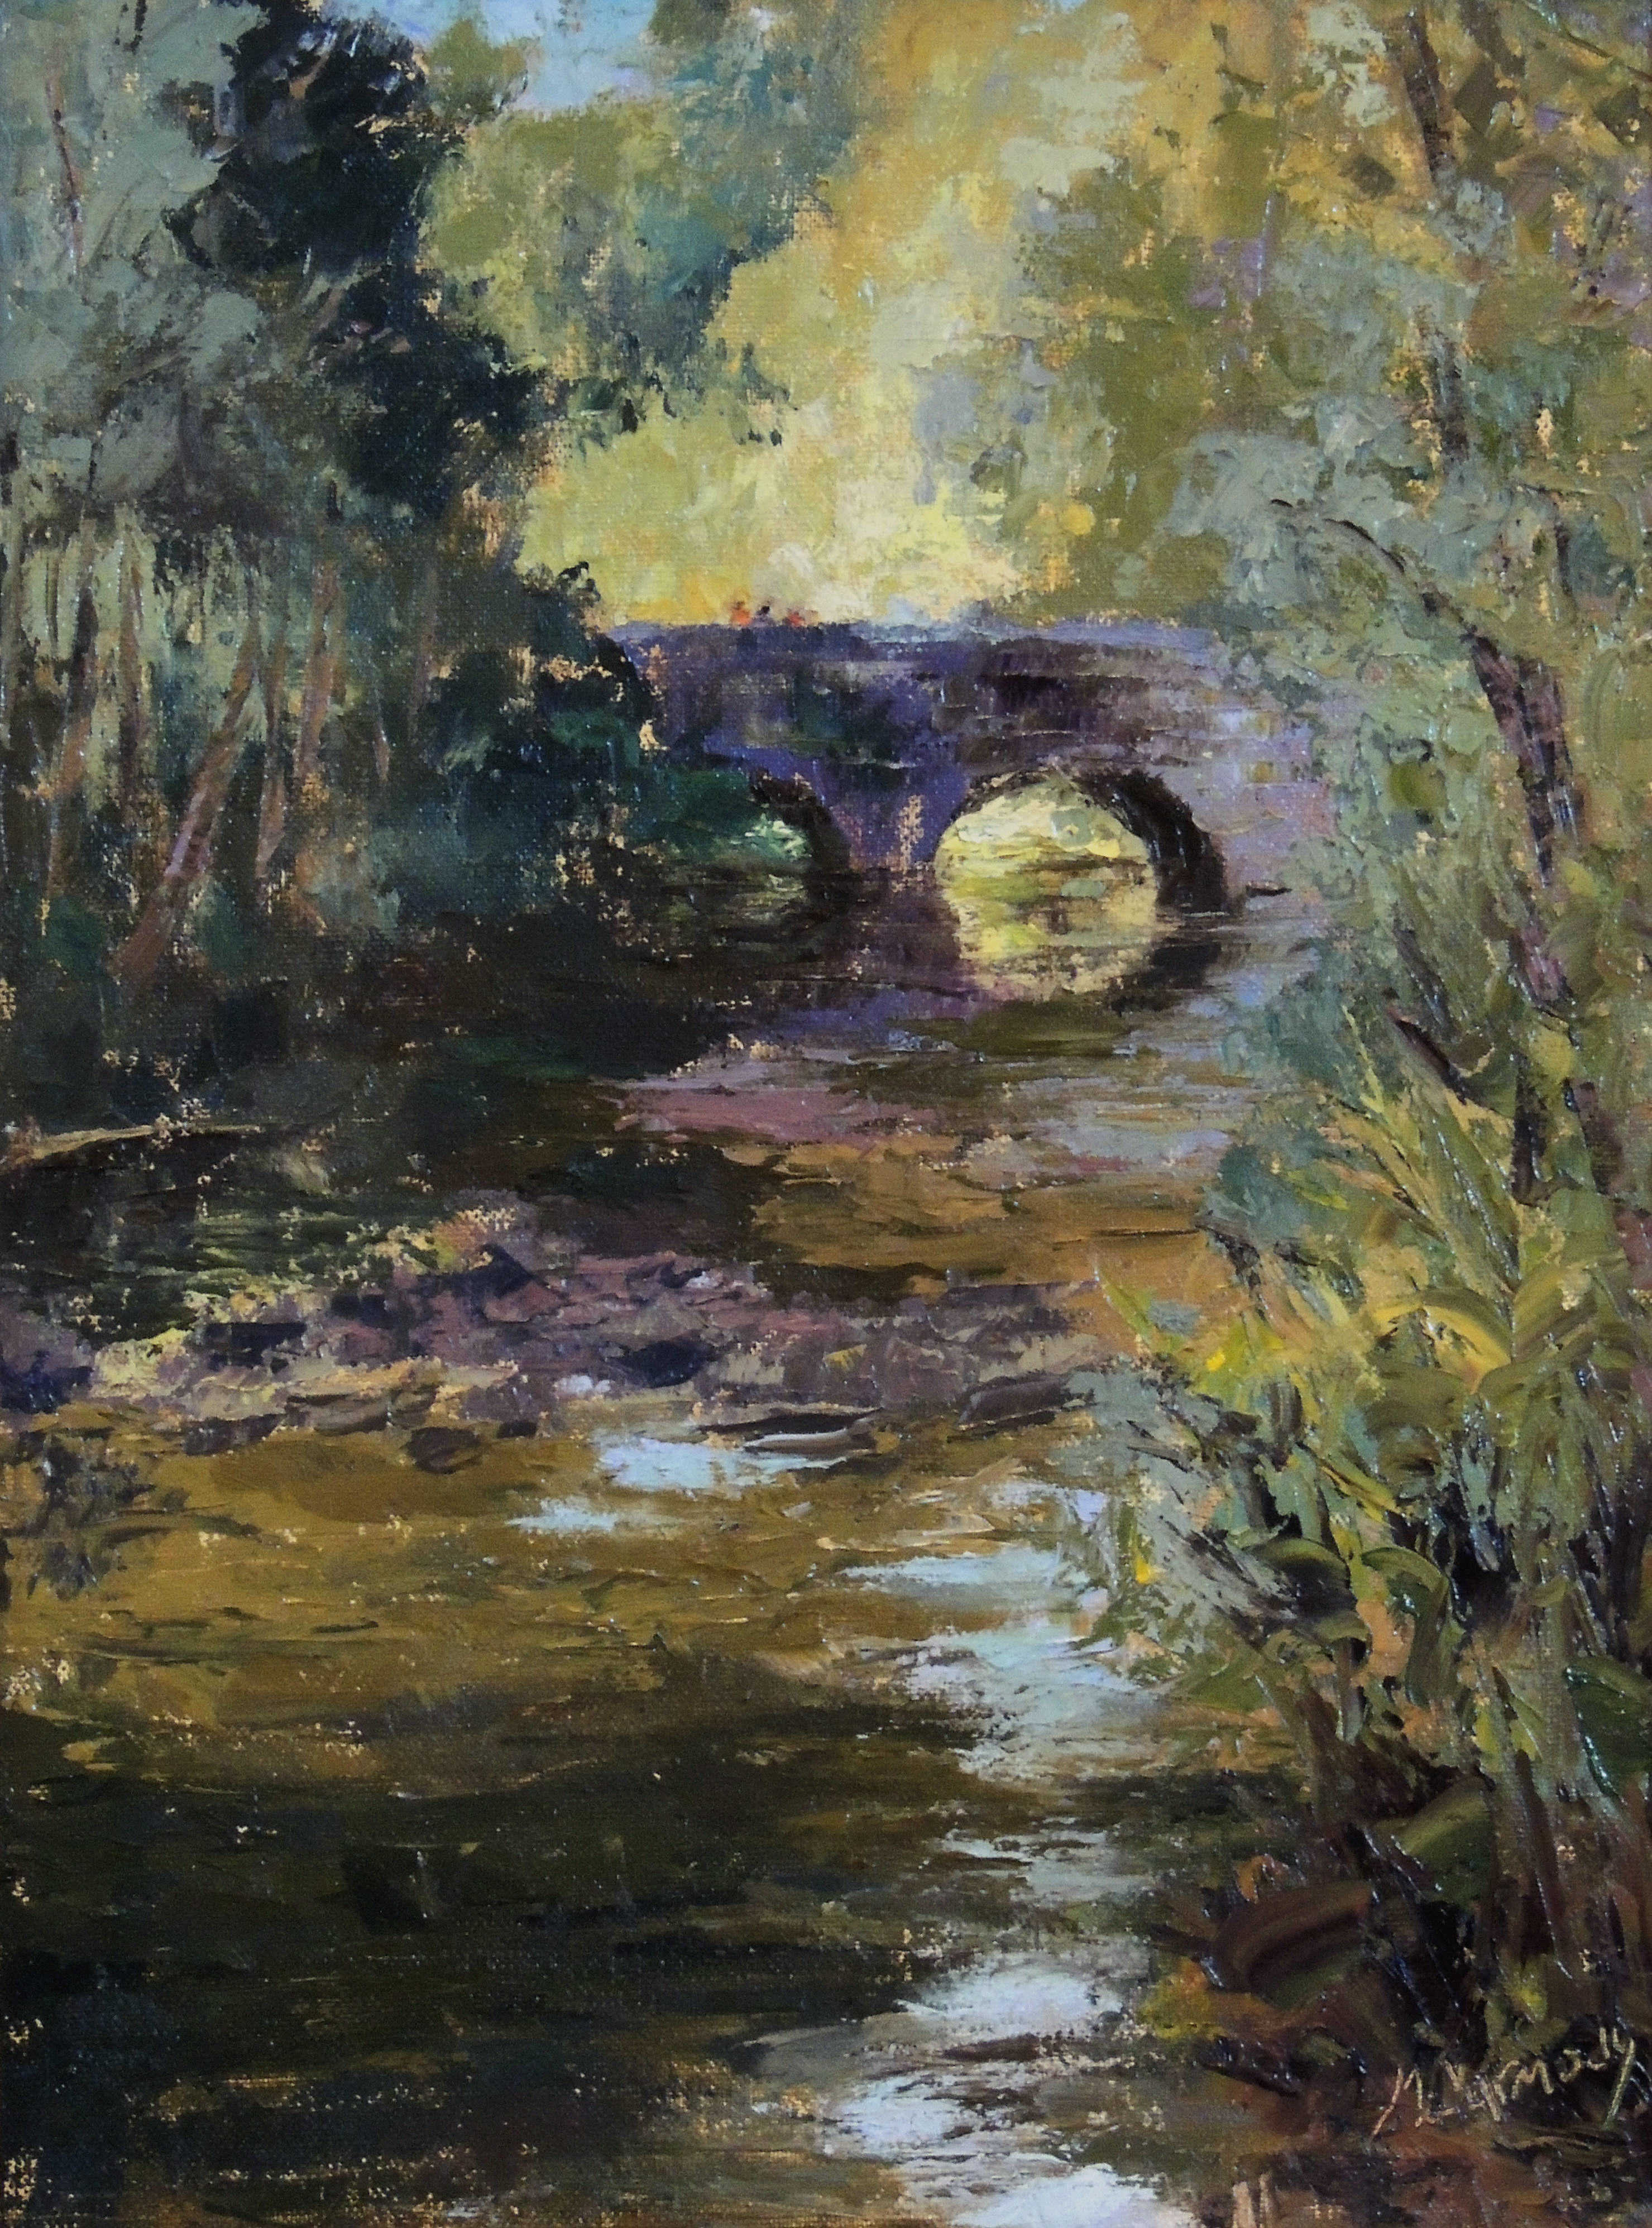 Martha Carmody | PARK BRIDGE IN SHARON WOODS | oil | frame size 24x20